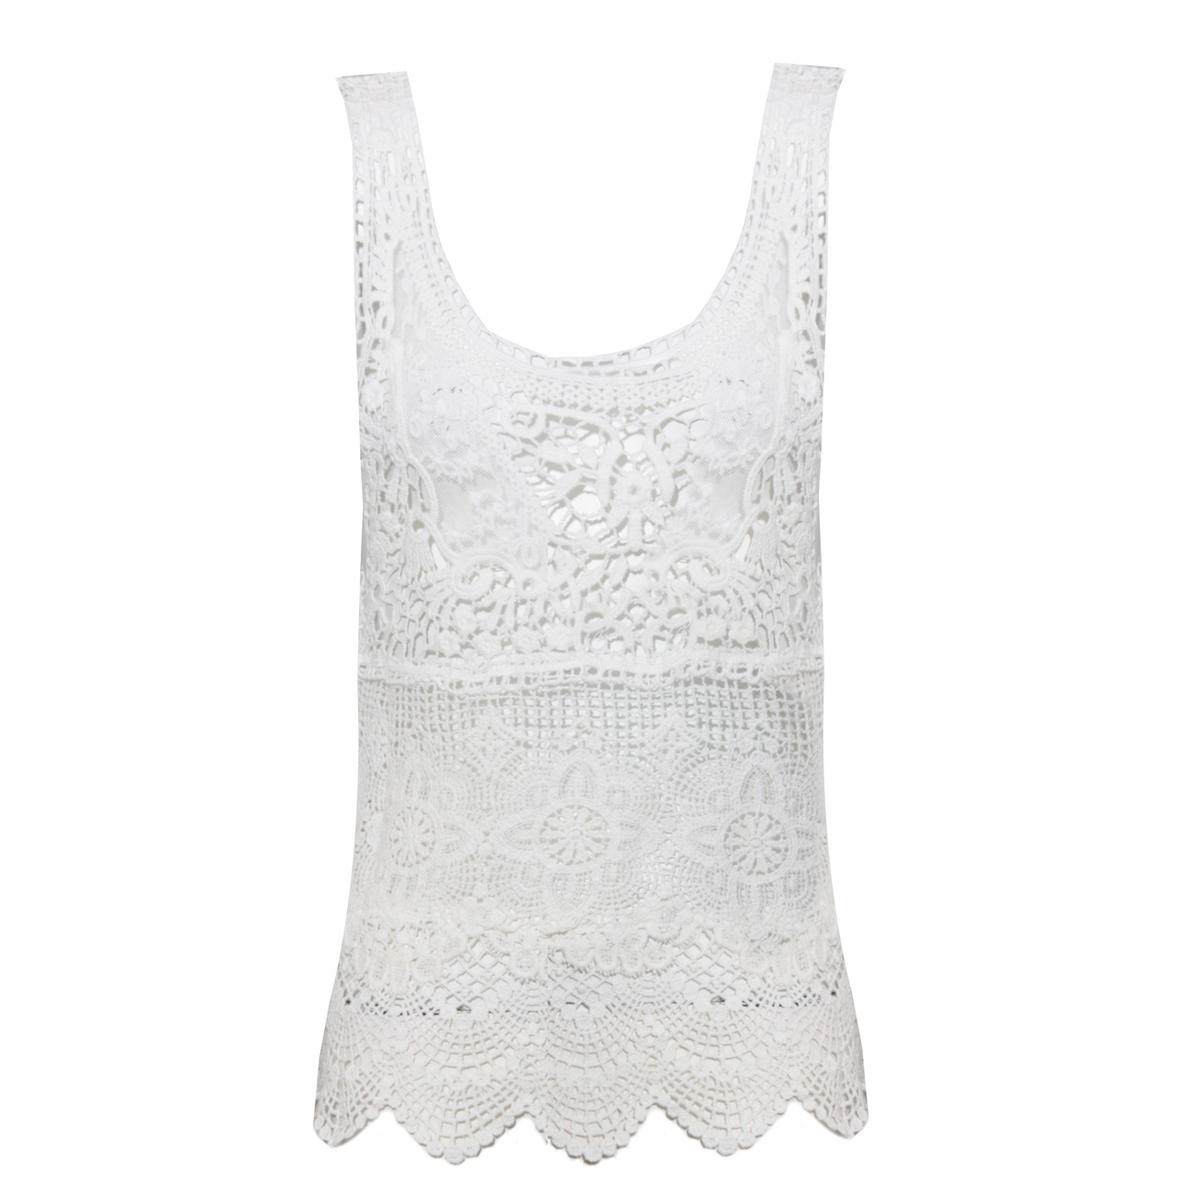 White Crochet Lace Vest Top Preview